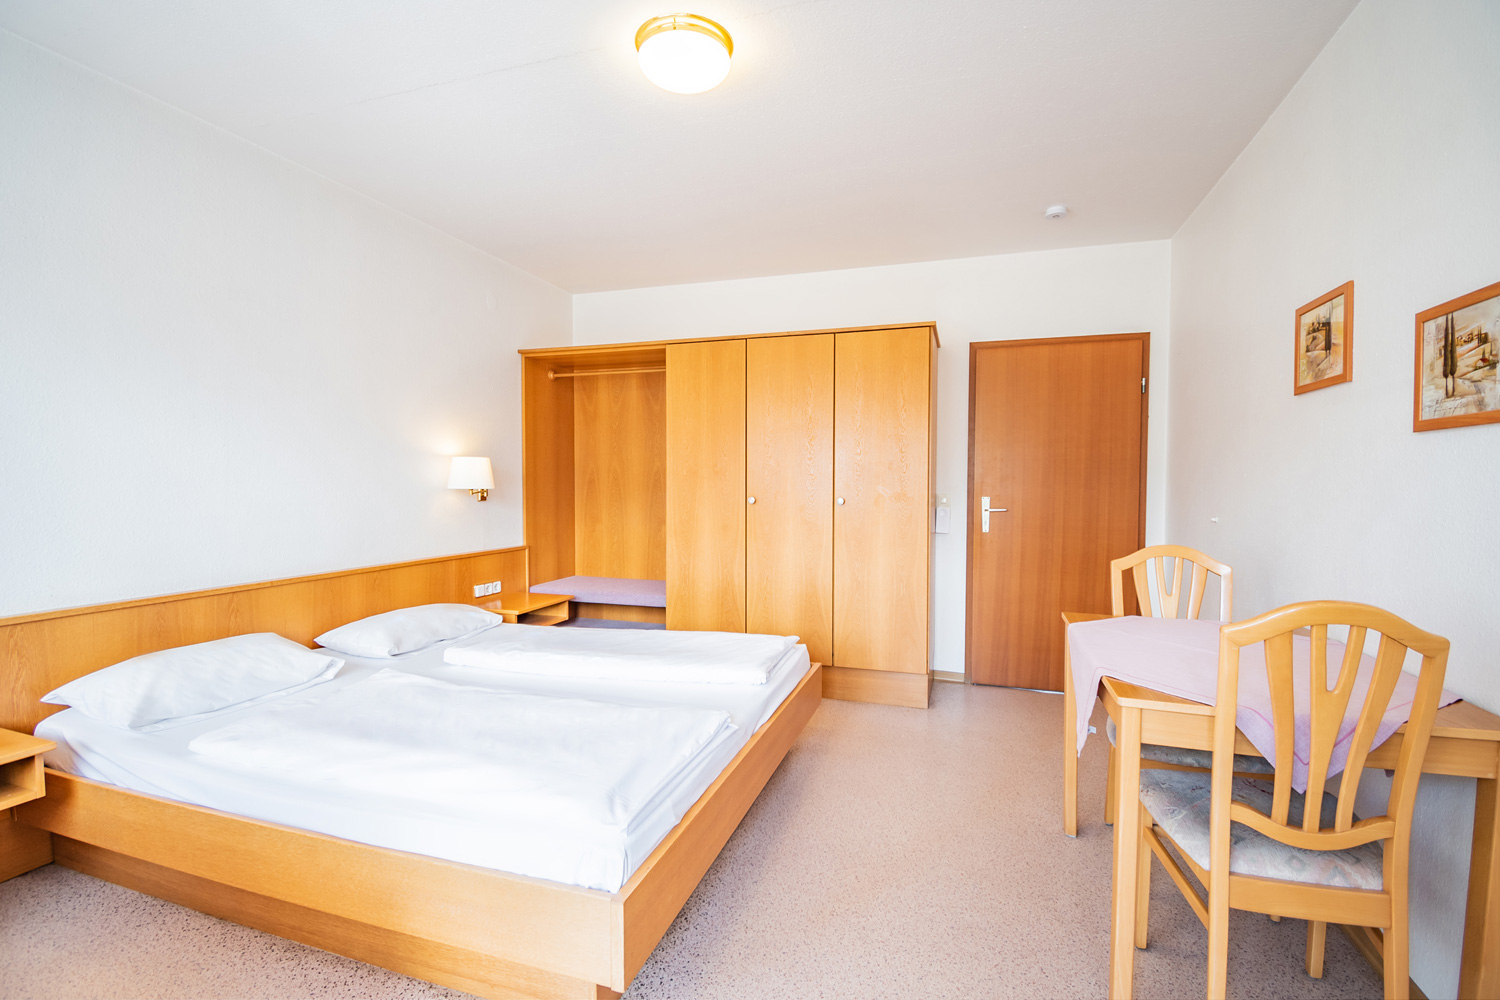 Hotel bedroom with double bed, wardrobe, and table.